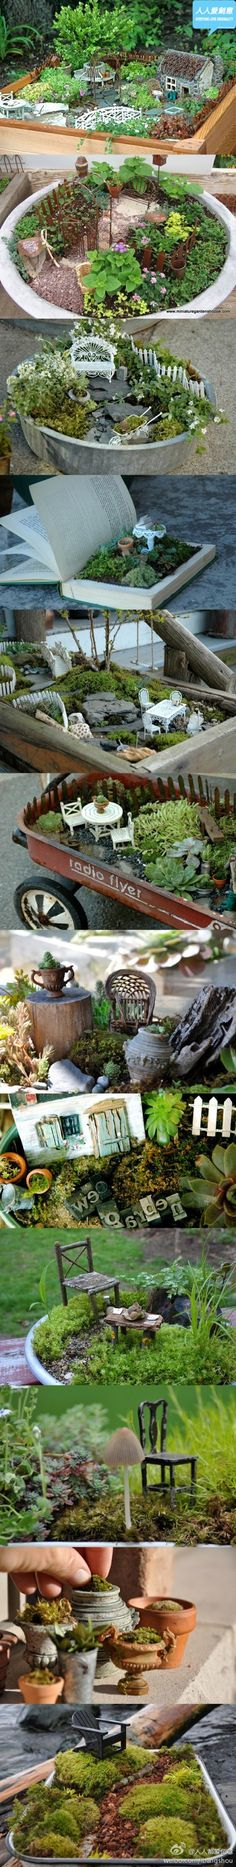 A lot of really fun ideas for miniature gardens you can make.